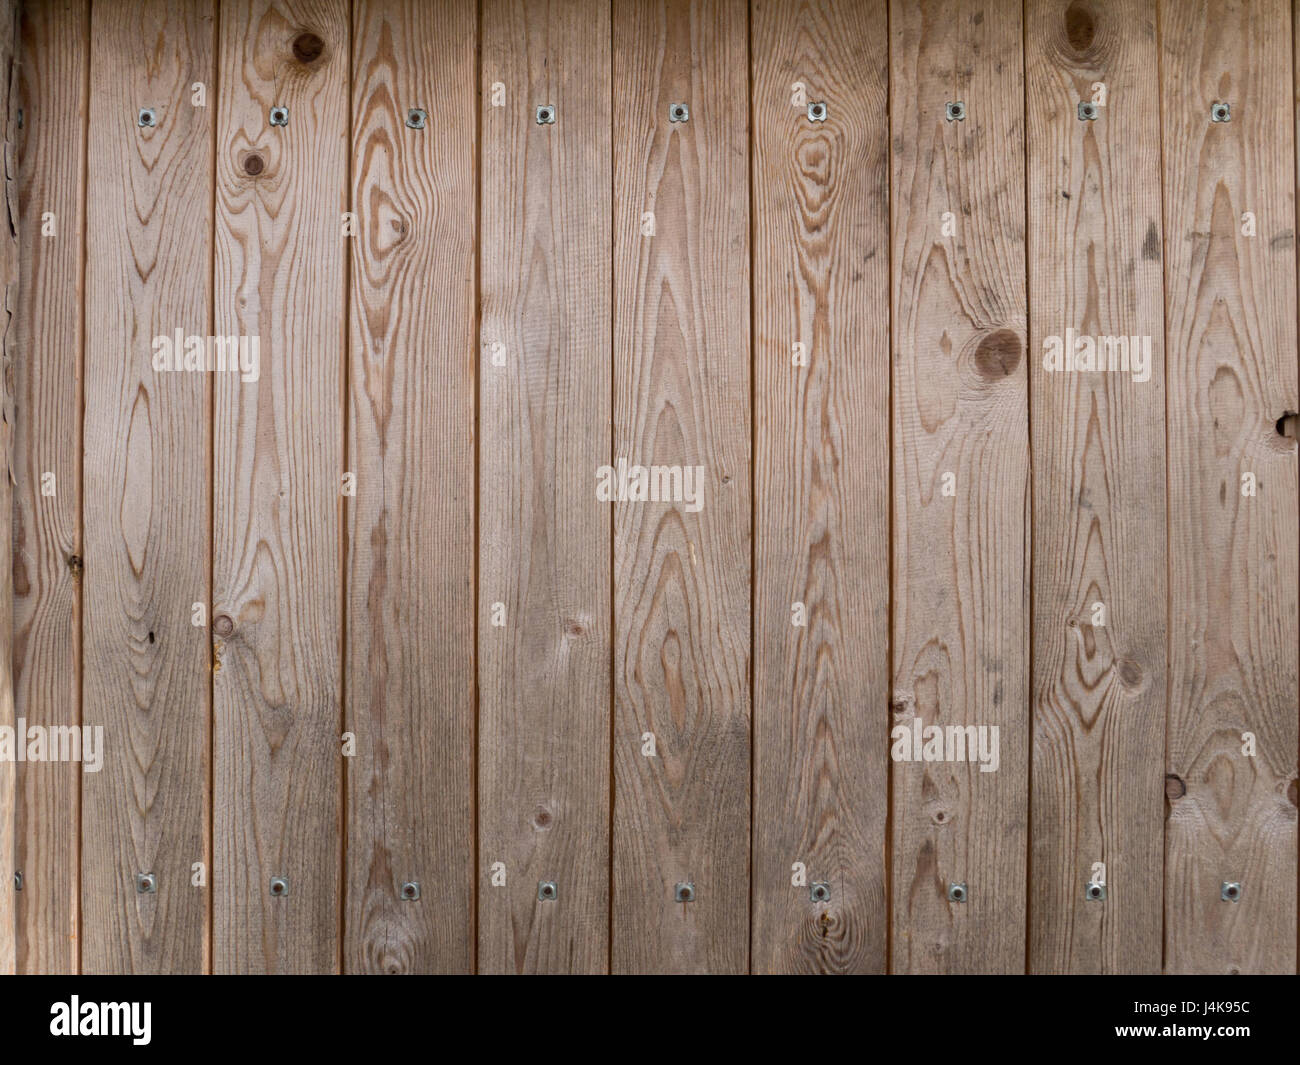 Wooden brown planks with metallic rivets background - Stock Image